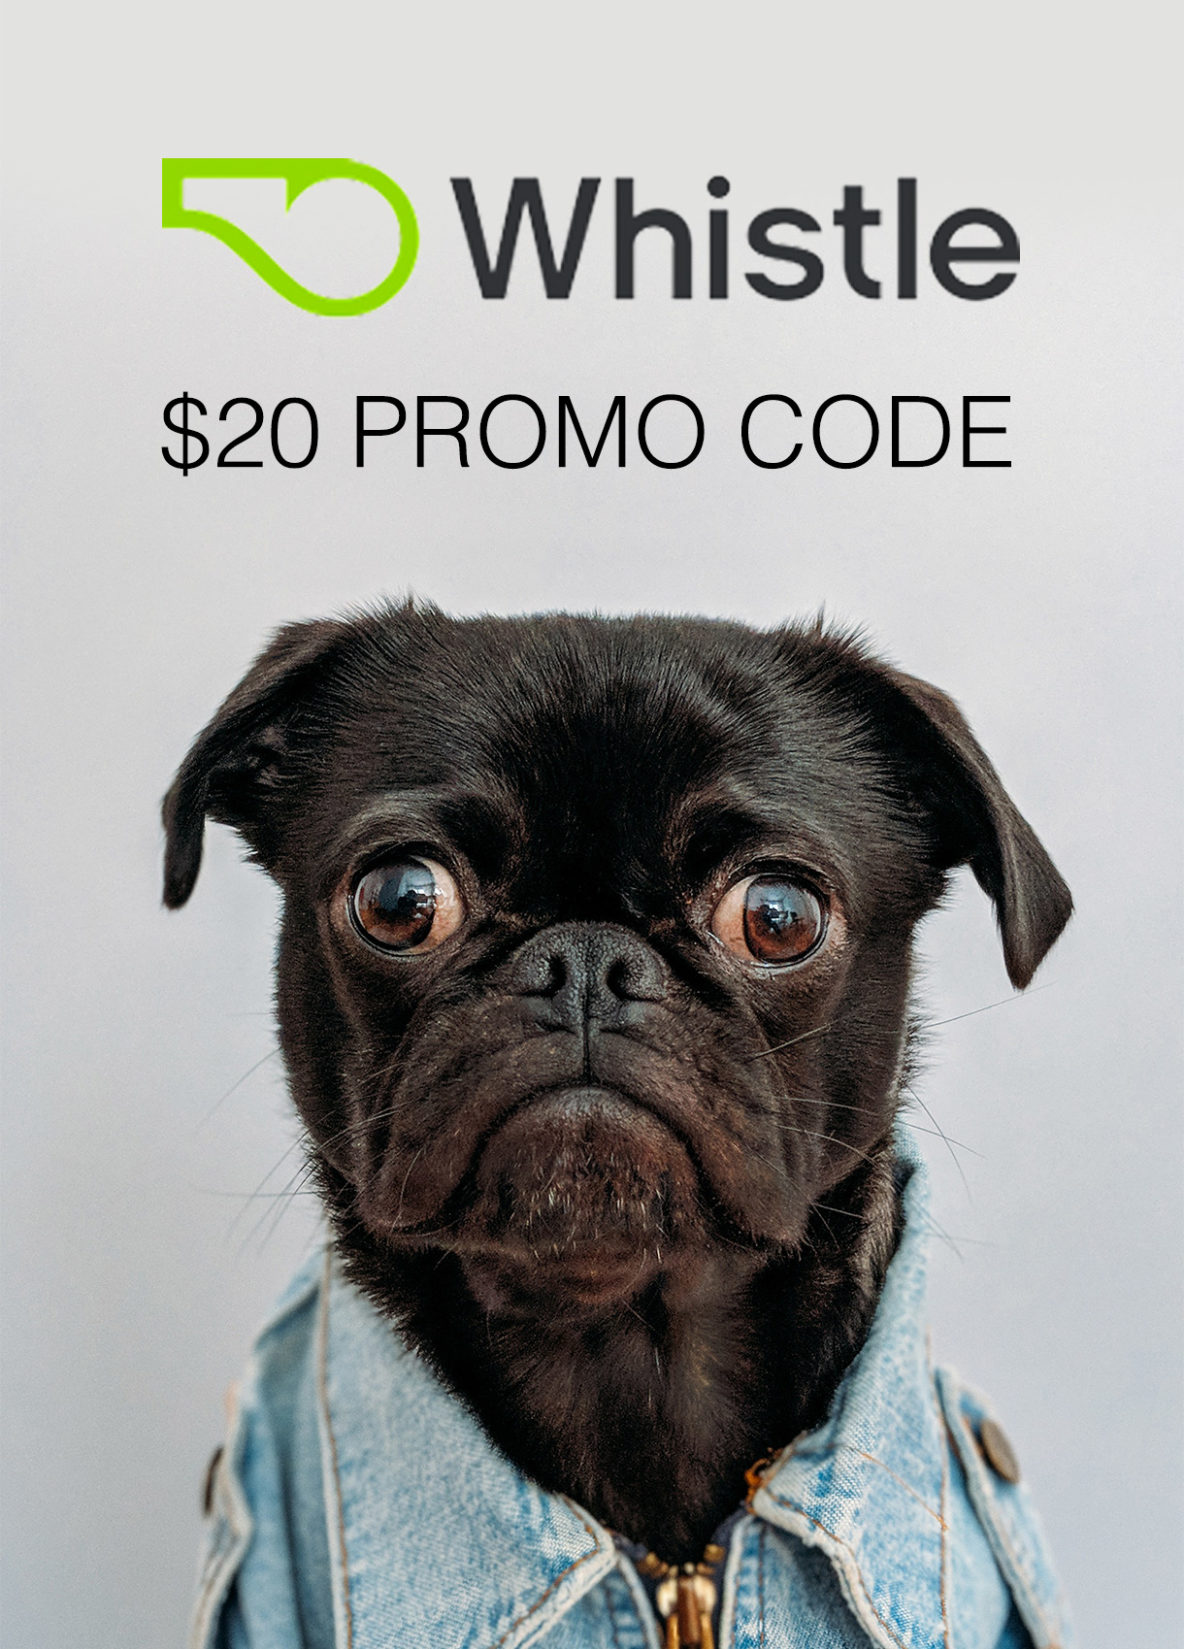 Whistle Promo Code: $20 Discount Dog Tracker